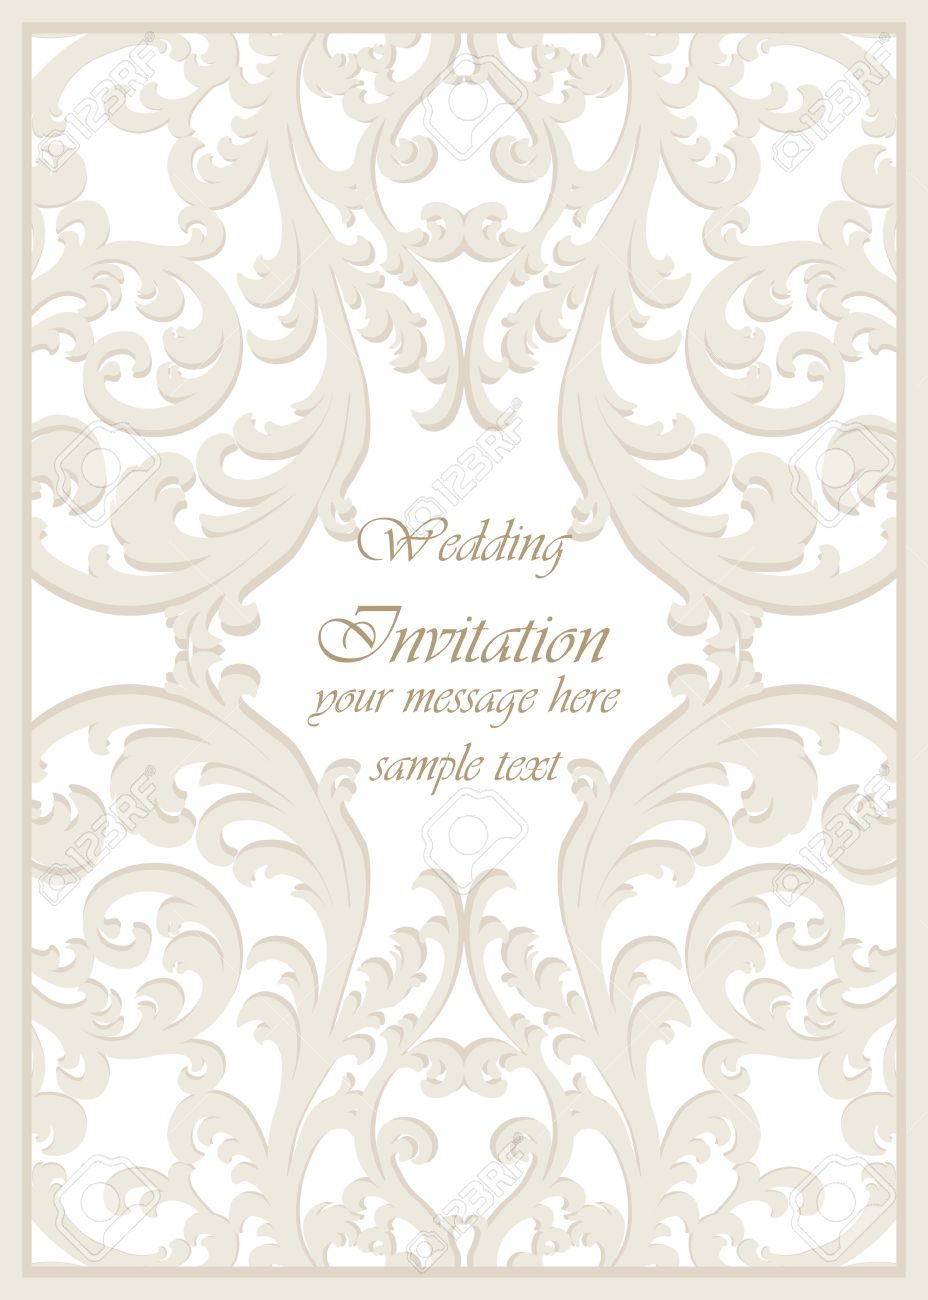 58637141 Vector Vintage Classic Wedding Invitation card Imperial style Floral ornament background for design Stock Vector vector vintage classic wedding invitation card imperial style,Wallpaper For Wedding Invitation